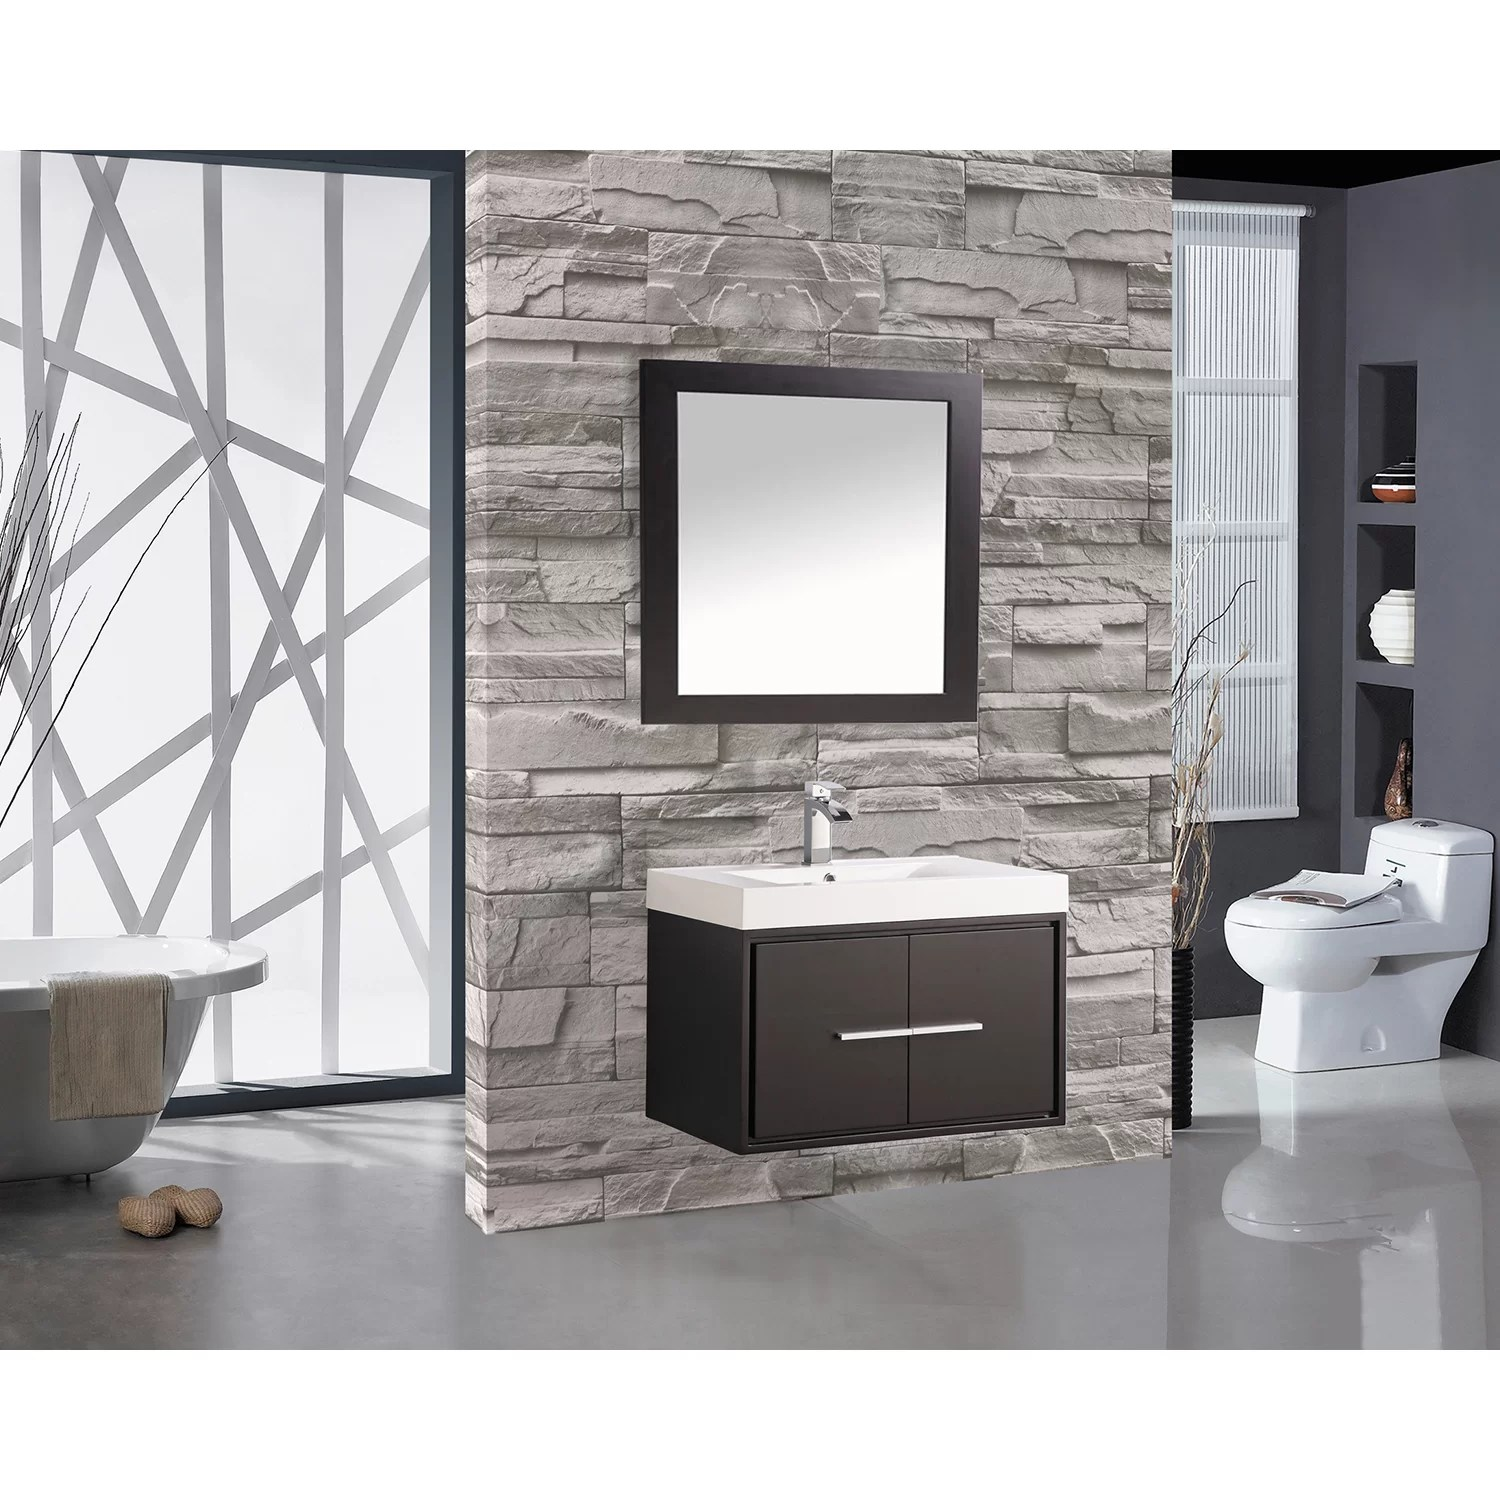 30 Floating Bathroom Vanity Mtdvanities Cypress 30 Quot Single Floating Bathroom Vanity